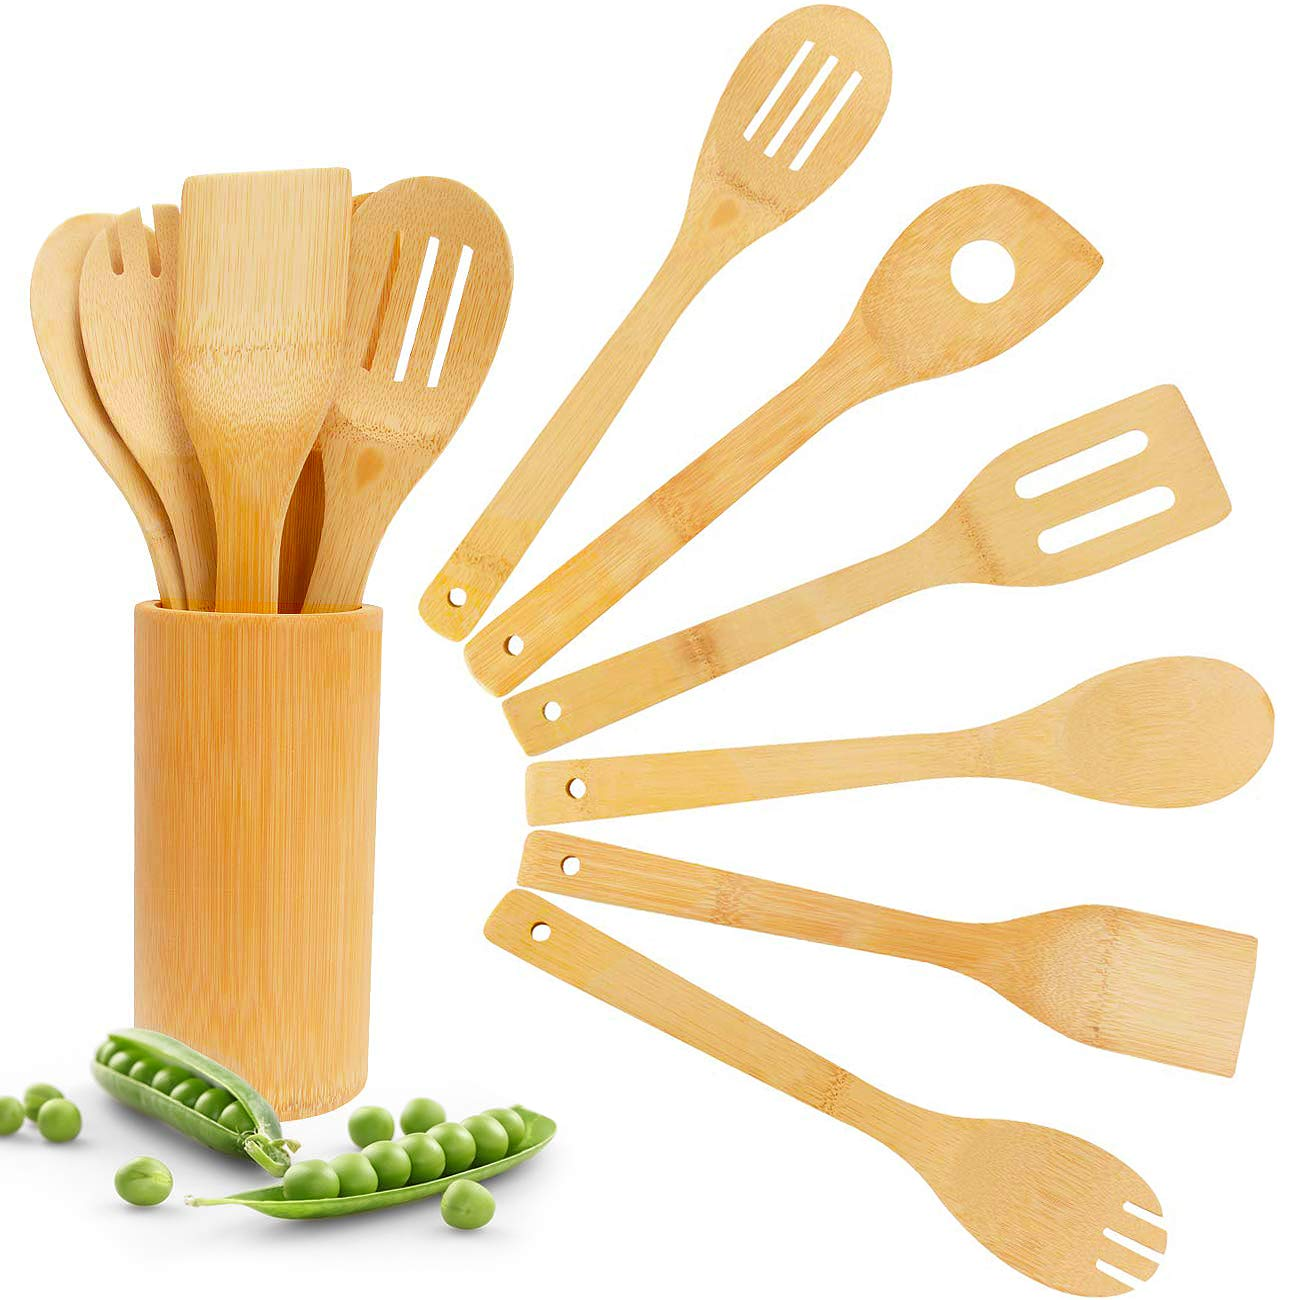 Kitchen Utensil Set with Holder Caddy Crock Rest Bamboo Nonstick Cooking Spoons Spatulas 6 Pieces Antimicrobial Healthy Kitchen Tools